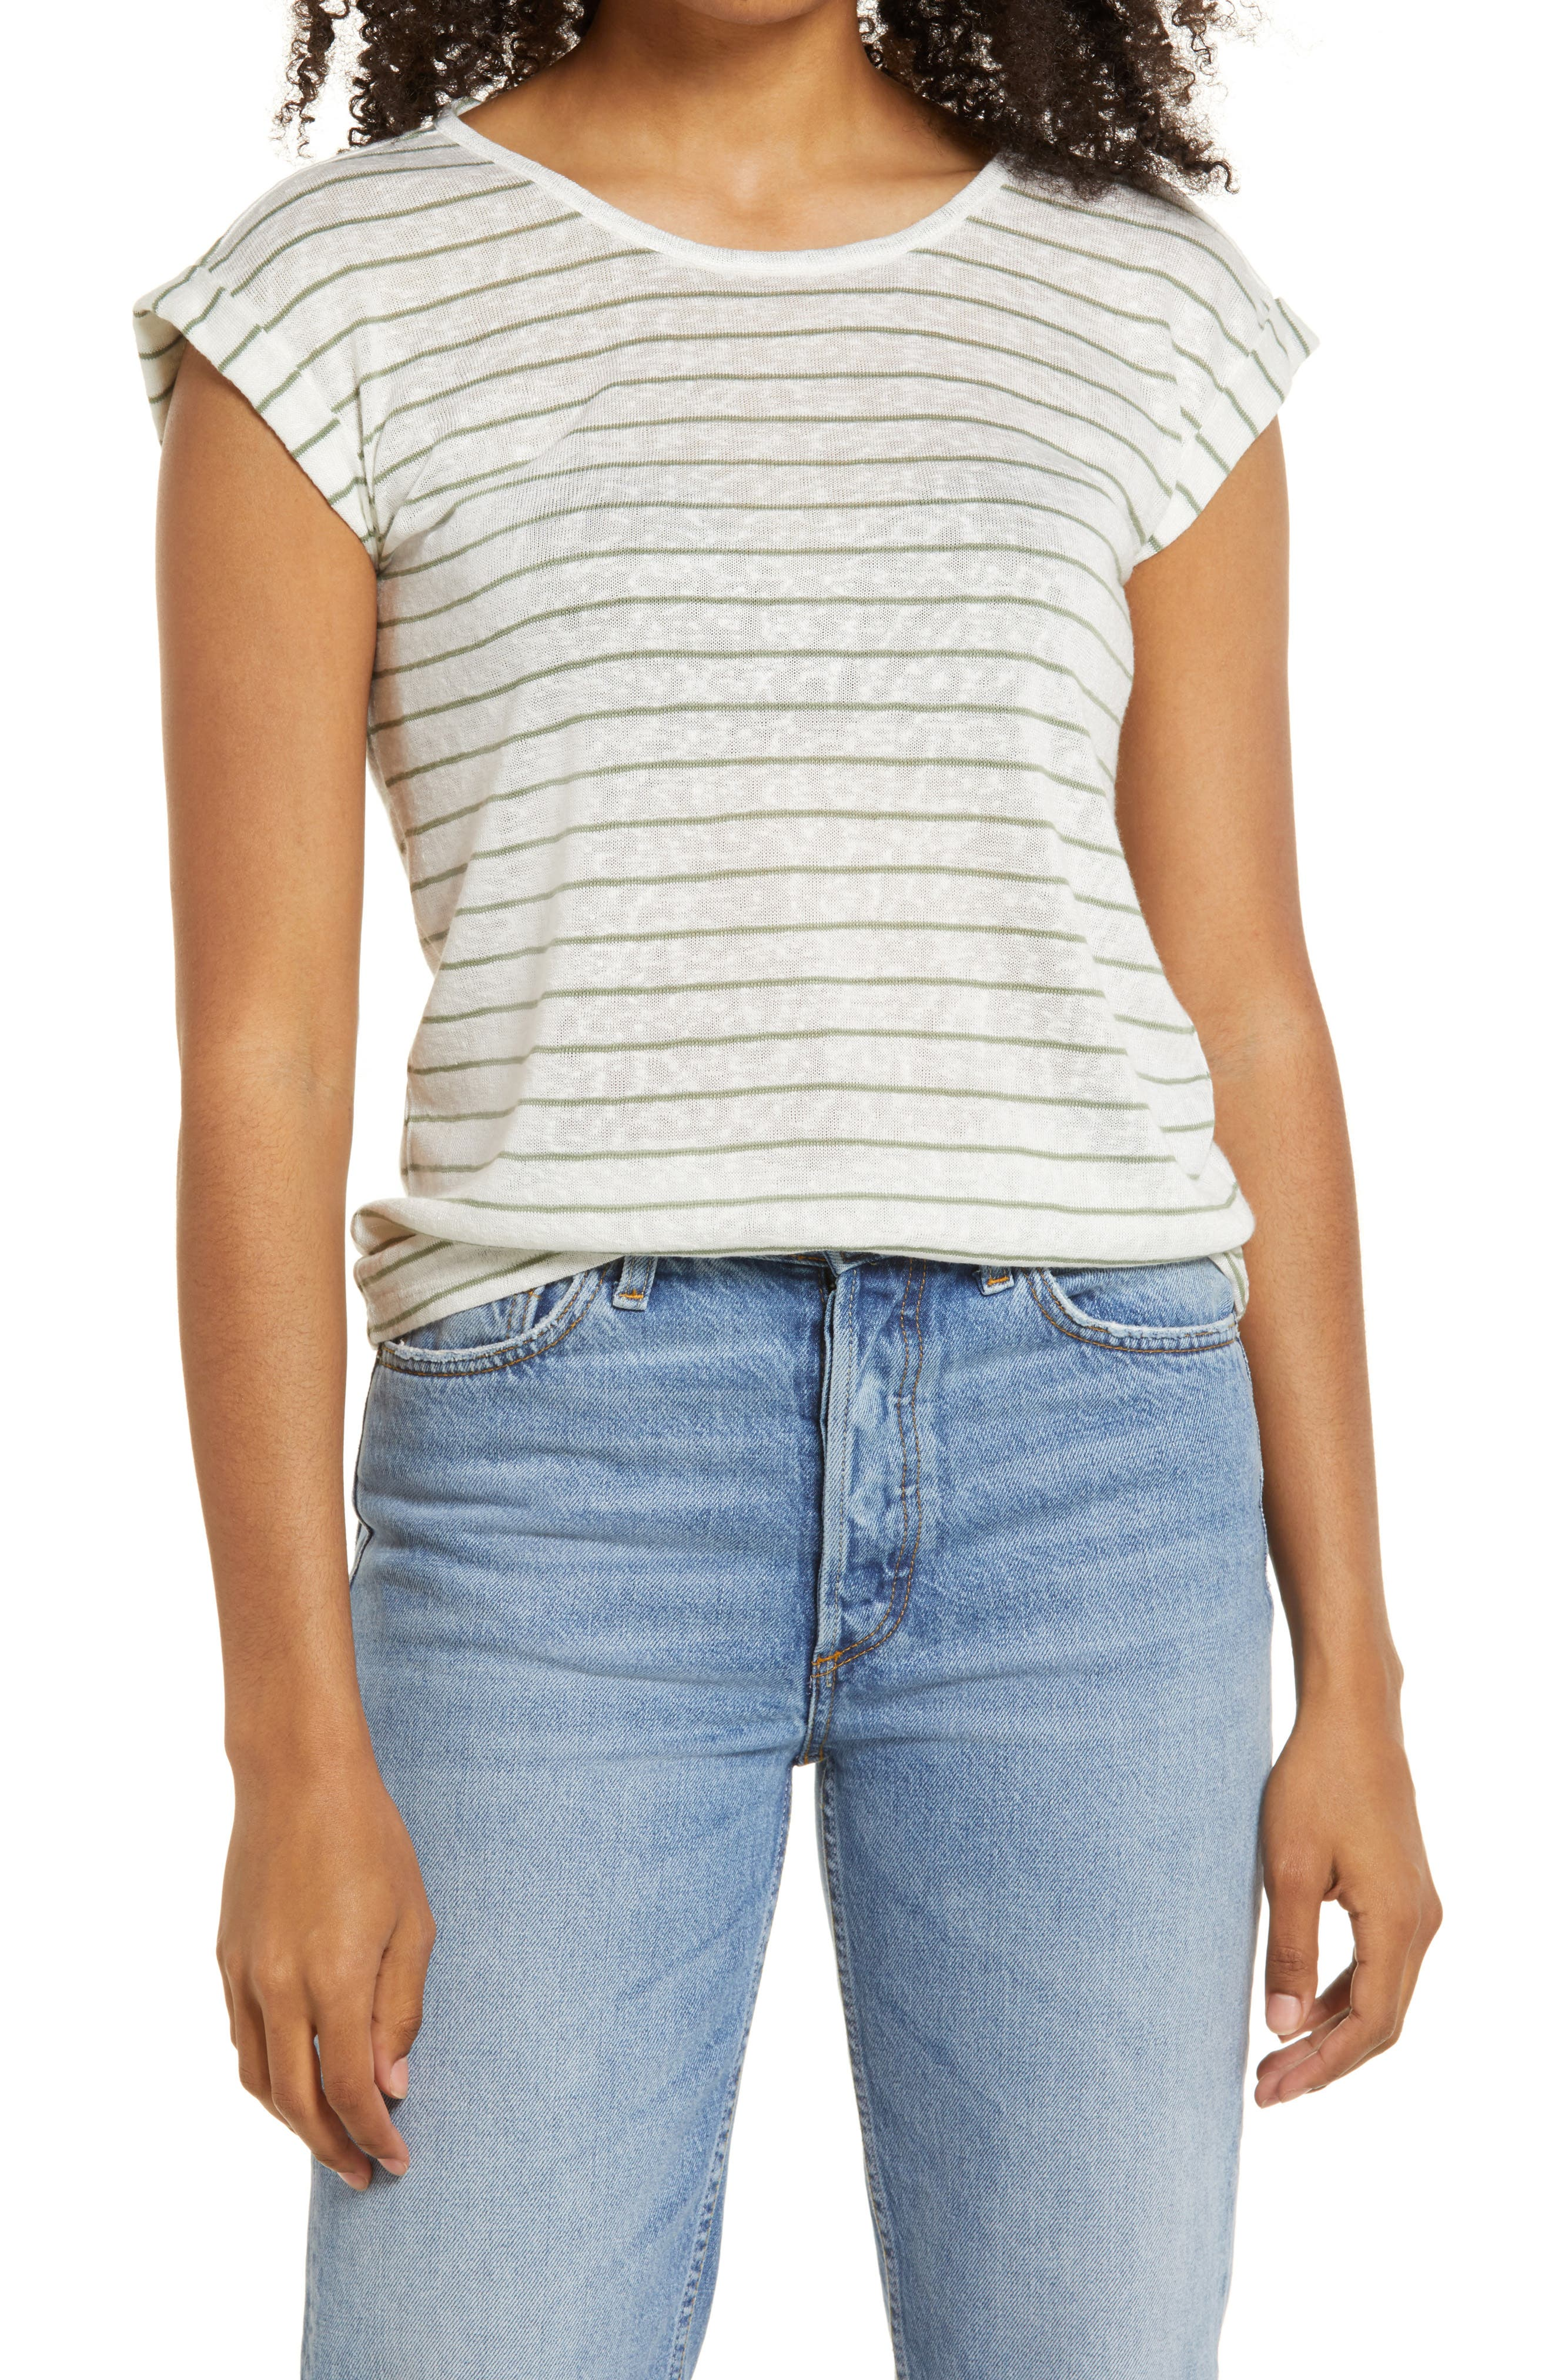 An easy knit top is enlivened with smart, horizontal stripes and a twisted keyhole back. Style Name: Wit & Wisdom Scoop Neck Twist Back T-Shirt (Nordstrom Exclusive). Style Number: 6039877. Available in stores.